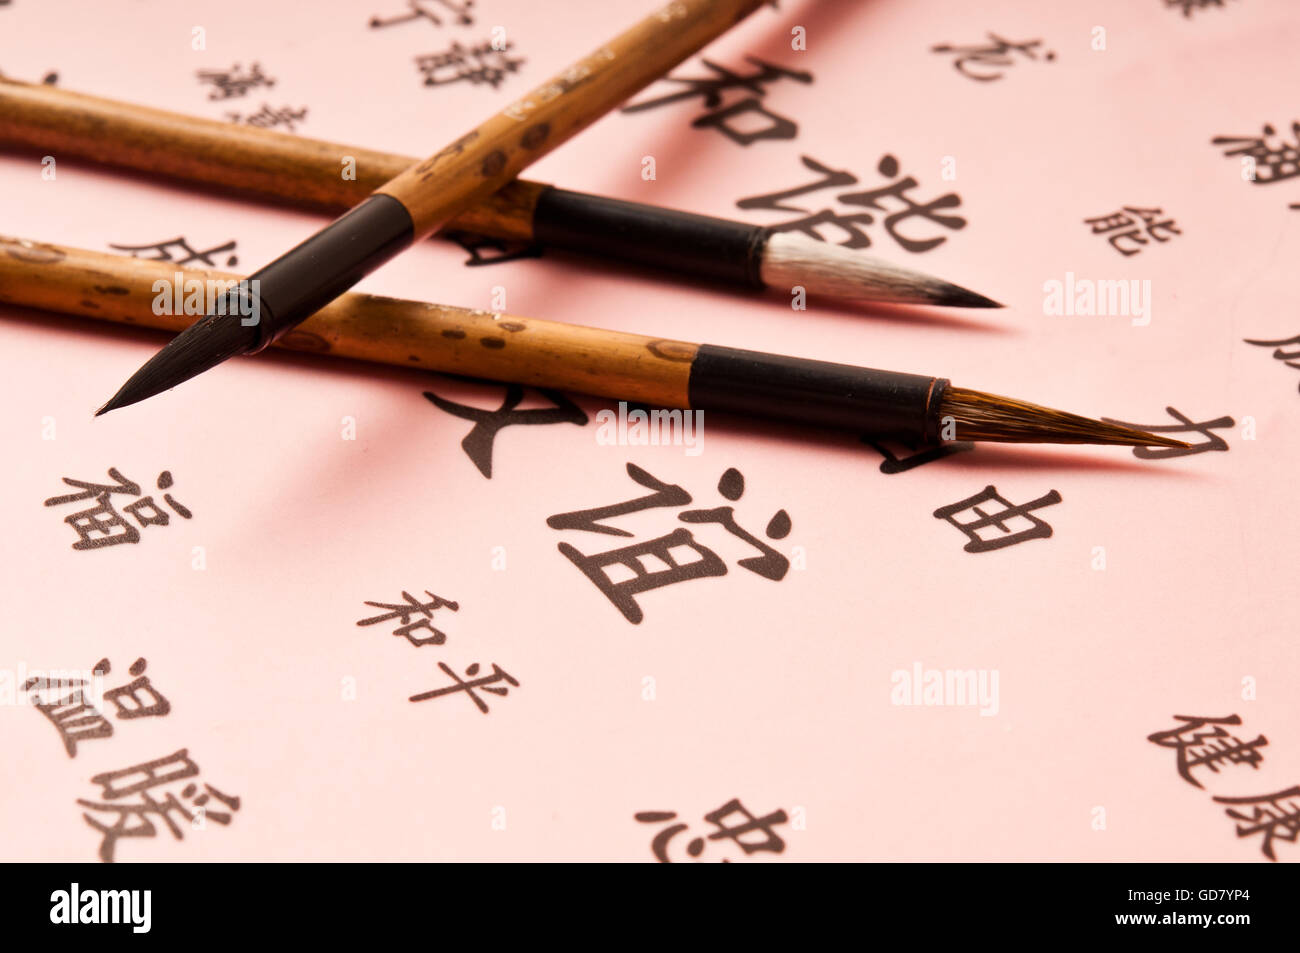 oriental brushes for Chinese calligraphy - Stock Image